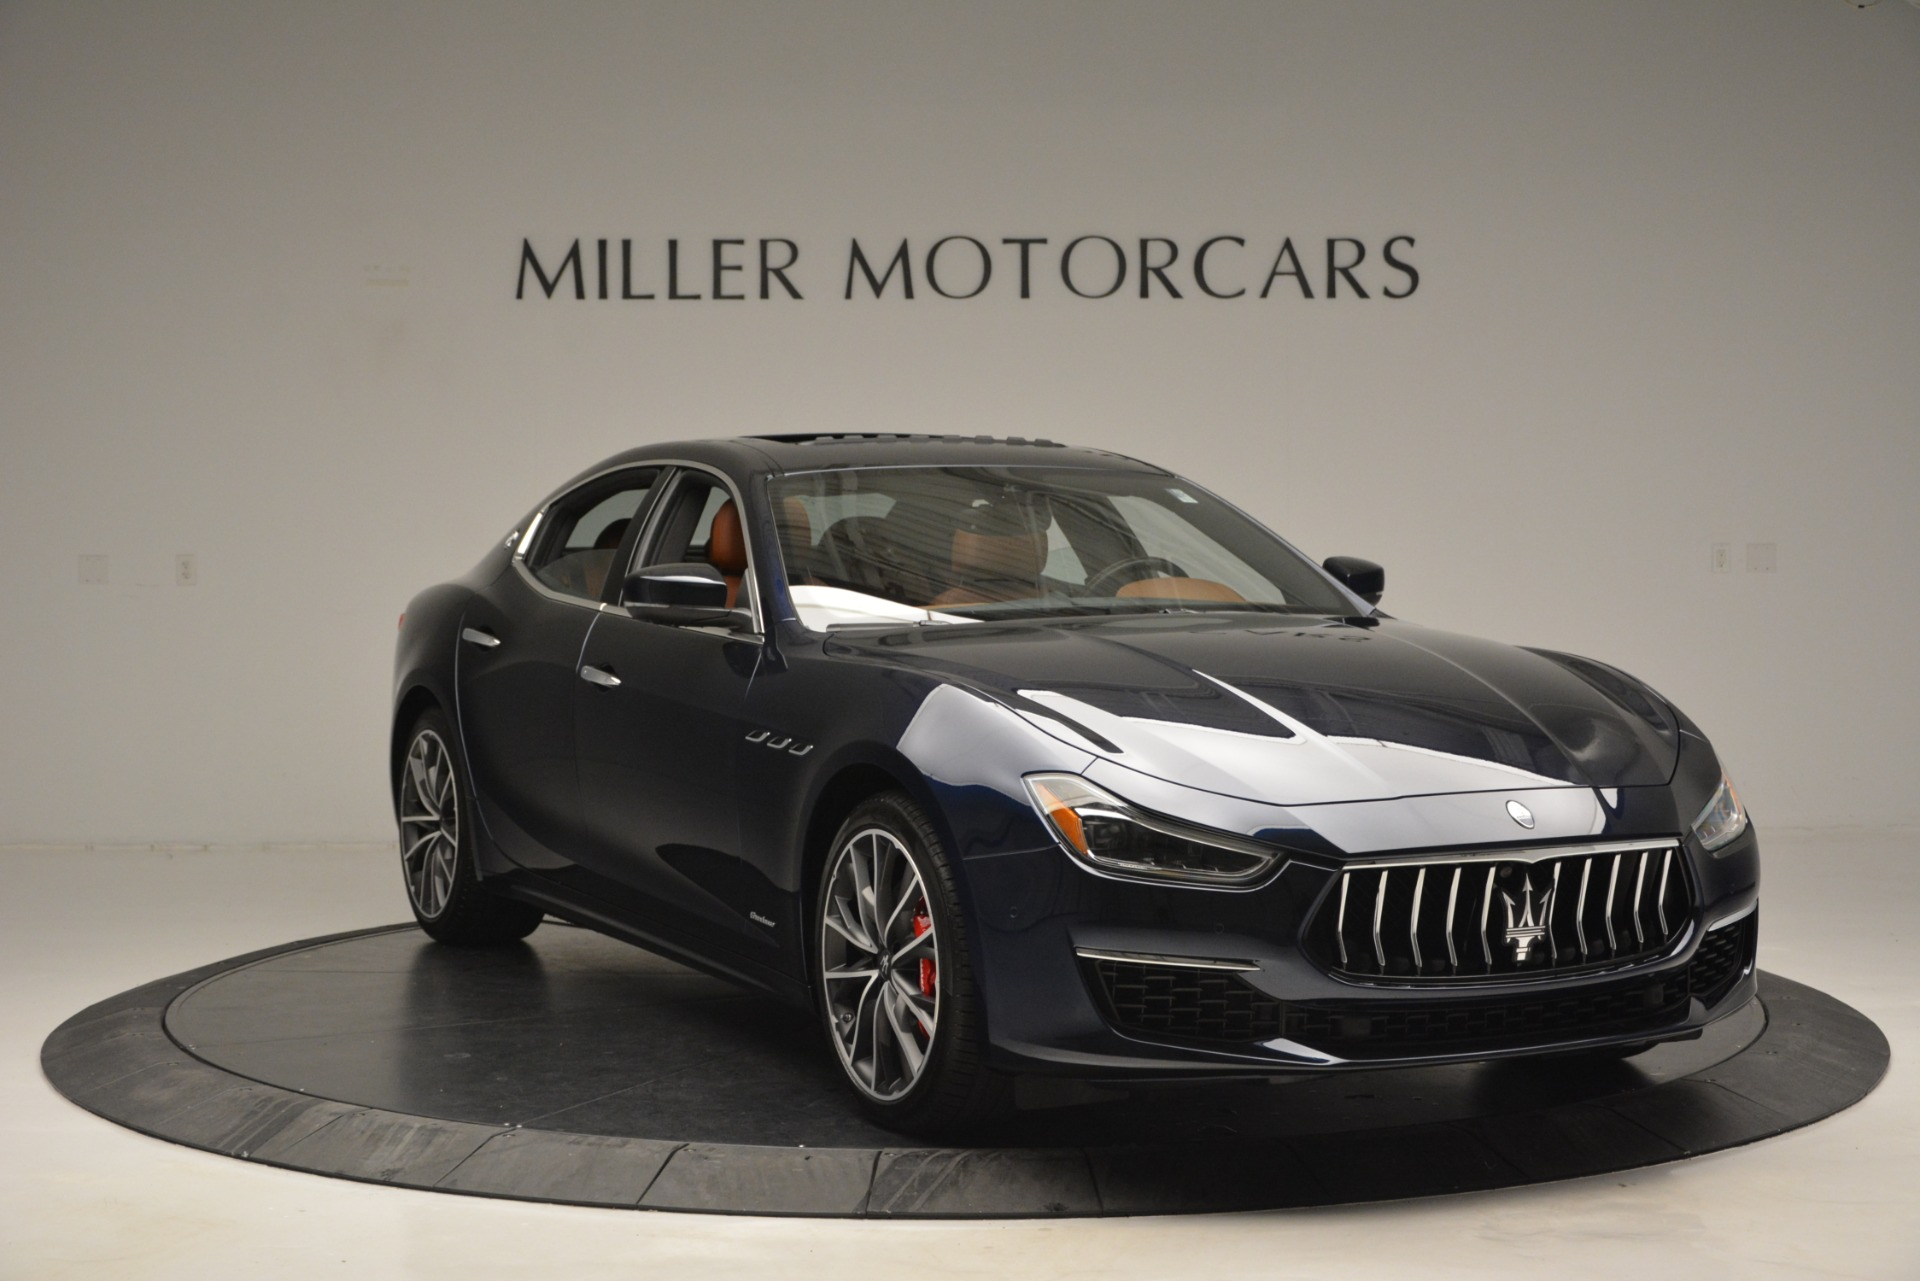 New 2019 Maserati Ghibli S Q4 GranLusso For Sale In Greenwich, CT 2882_p16